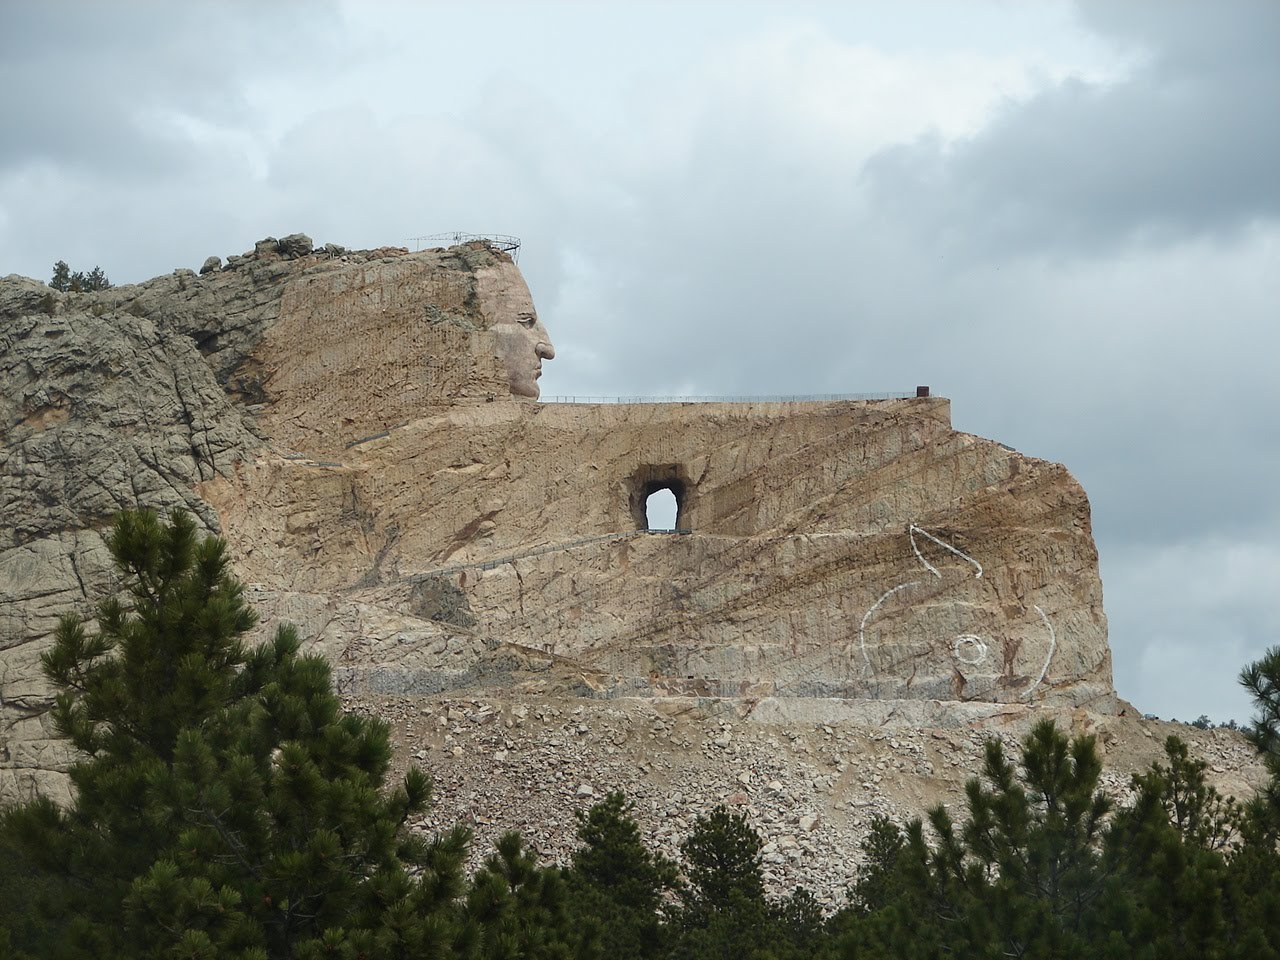 Crazy+Horse+Monument+Completion+Date Crazy Horse